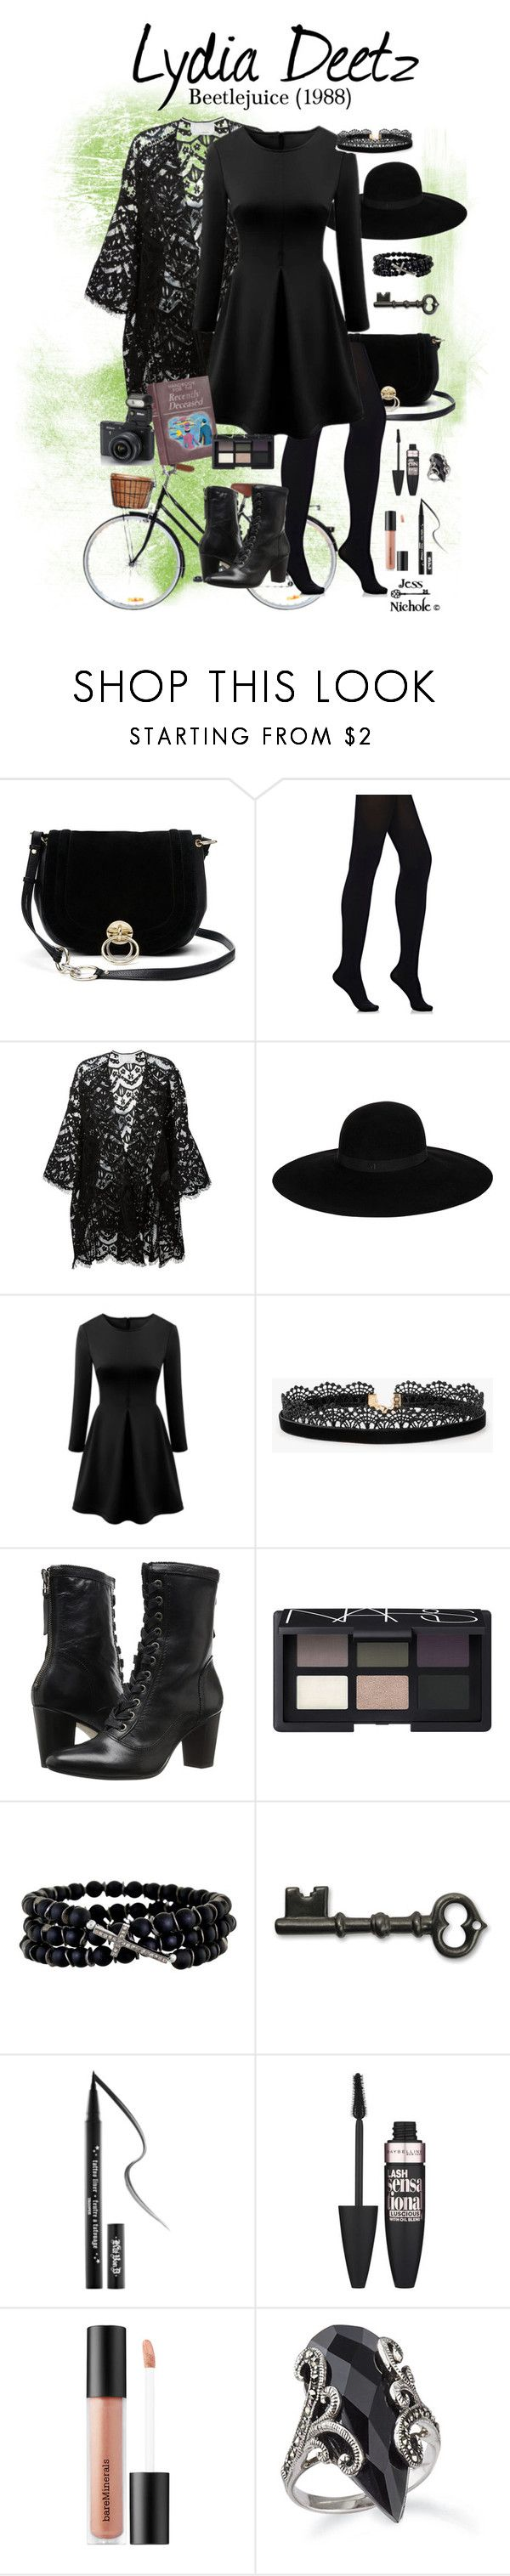 """Beetlejuice (1988): Lydia Deetz"" by jess-nichole ❤ liked on Polyvore featuring Diane Von Furstenberg, Wolford, Chloé, Maison Michel, WithChic, Azalea, Johnston & Murphy, NARS Cosmetics, Nikon and Renee Sheppard"